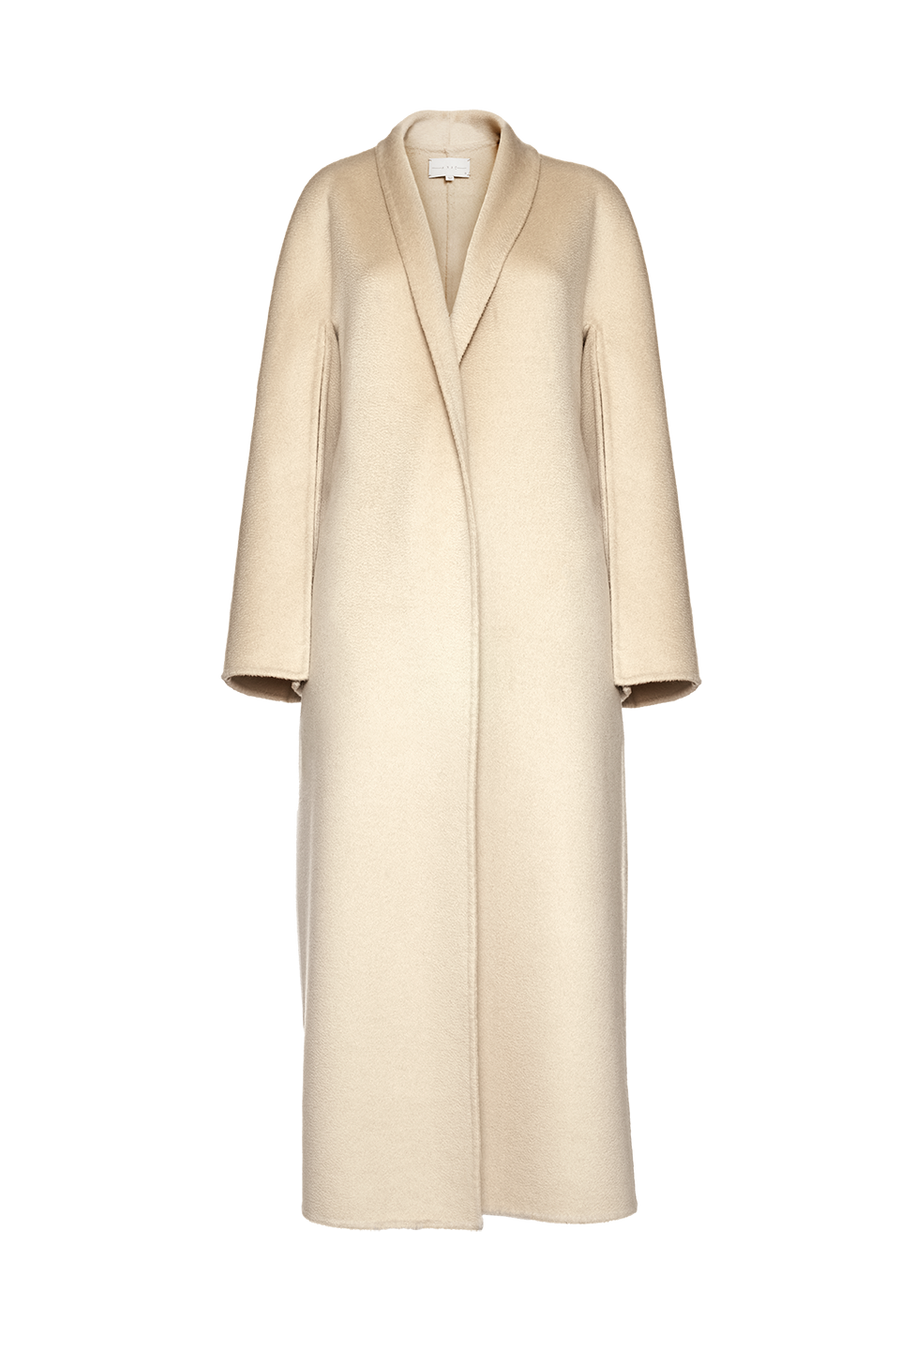 THE DAWN DOUBLE FACE CASHMERE COAT